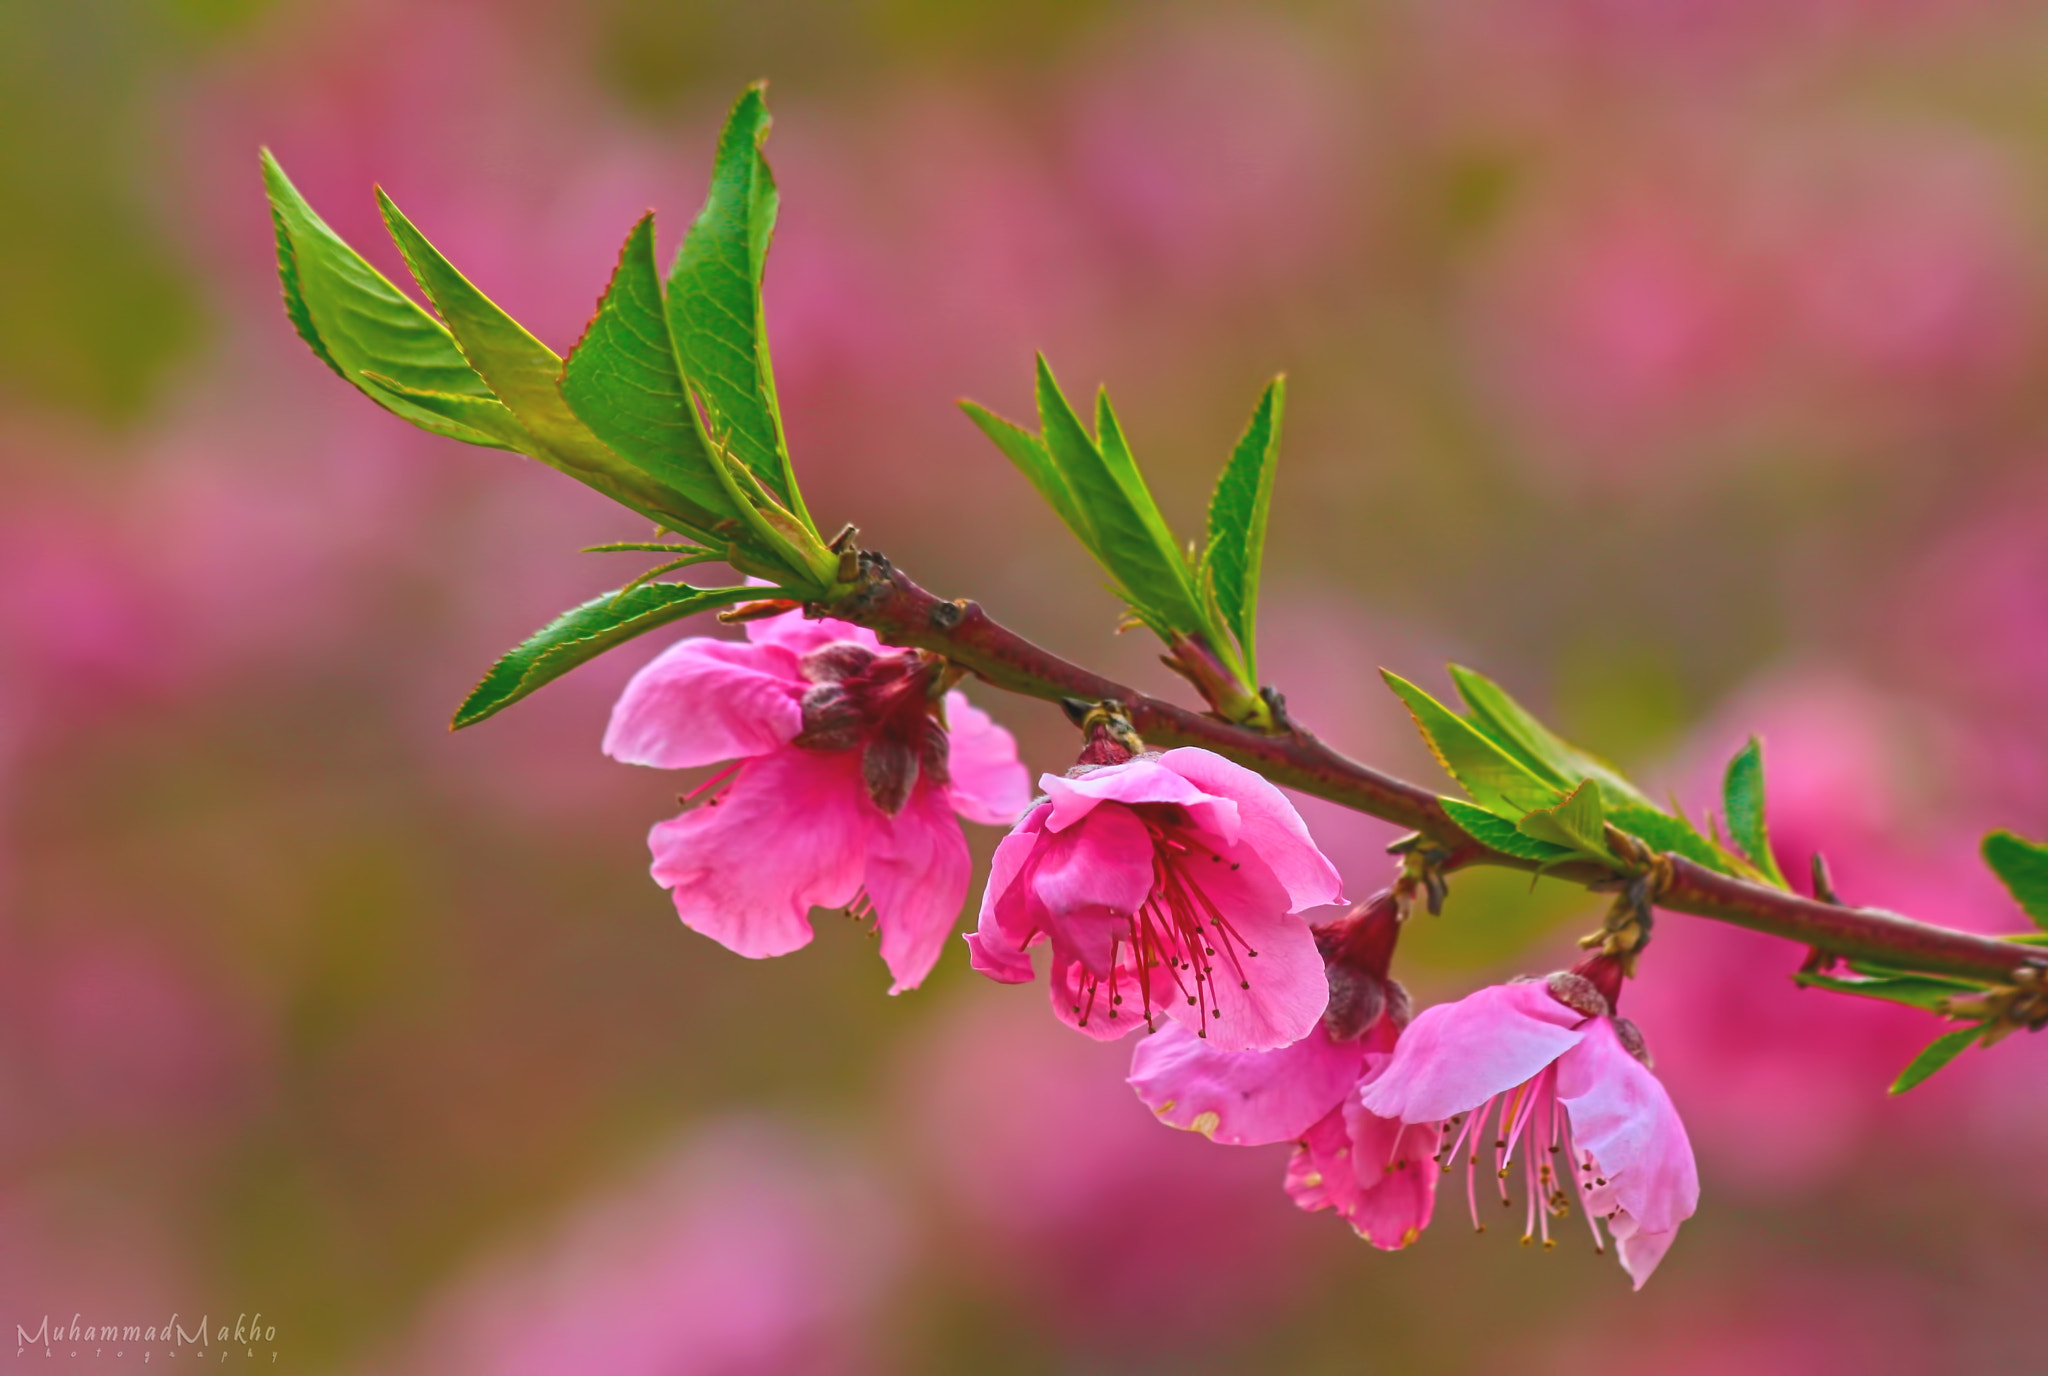 Photograph Pink by Muhammad Makho on 500px